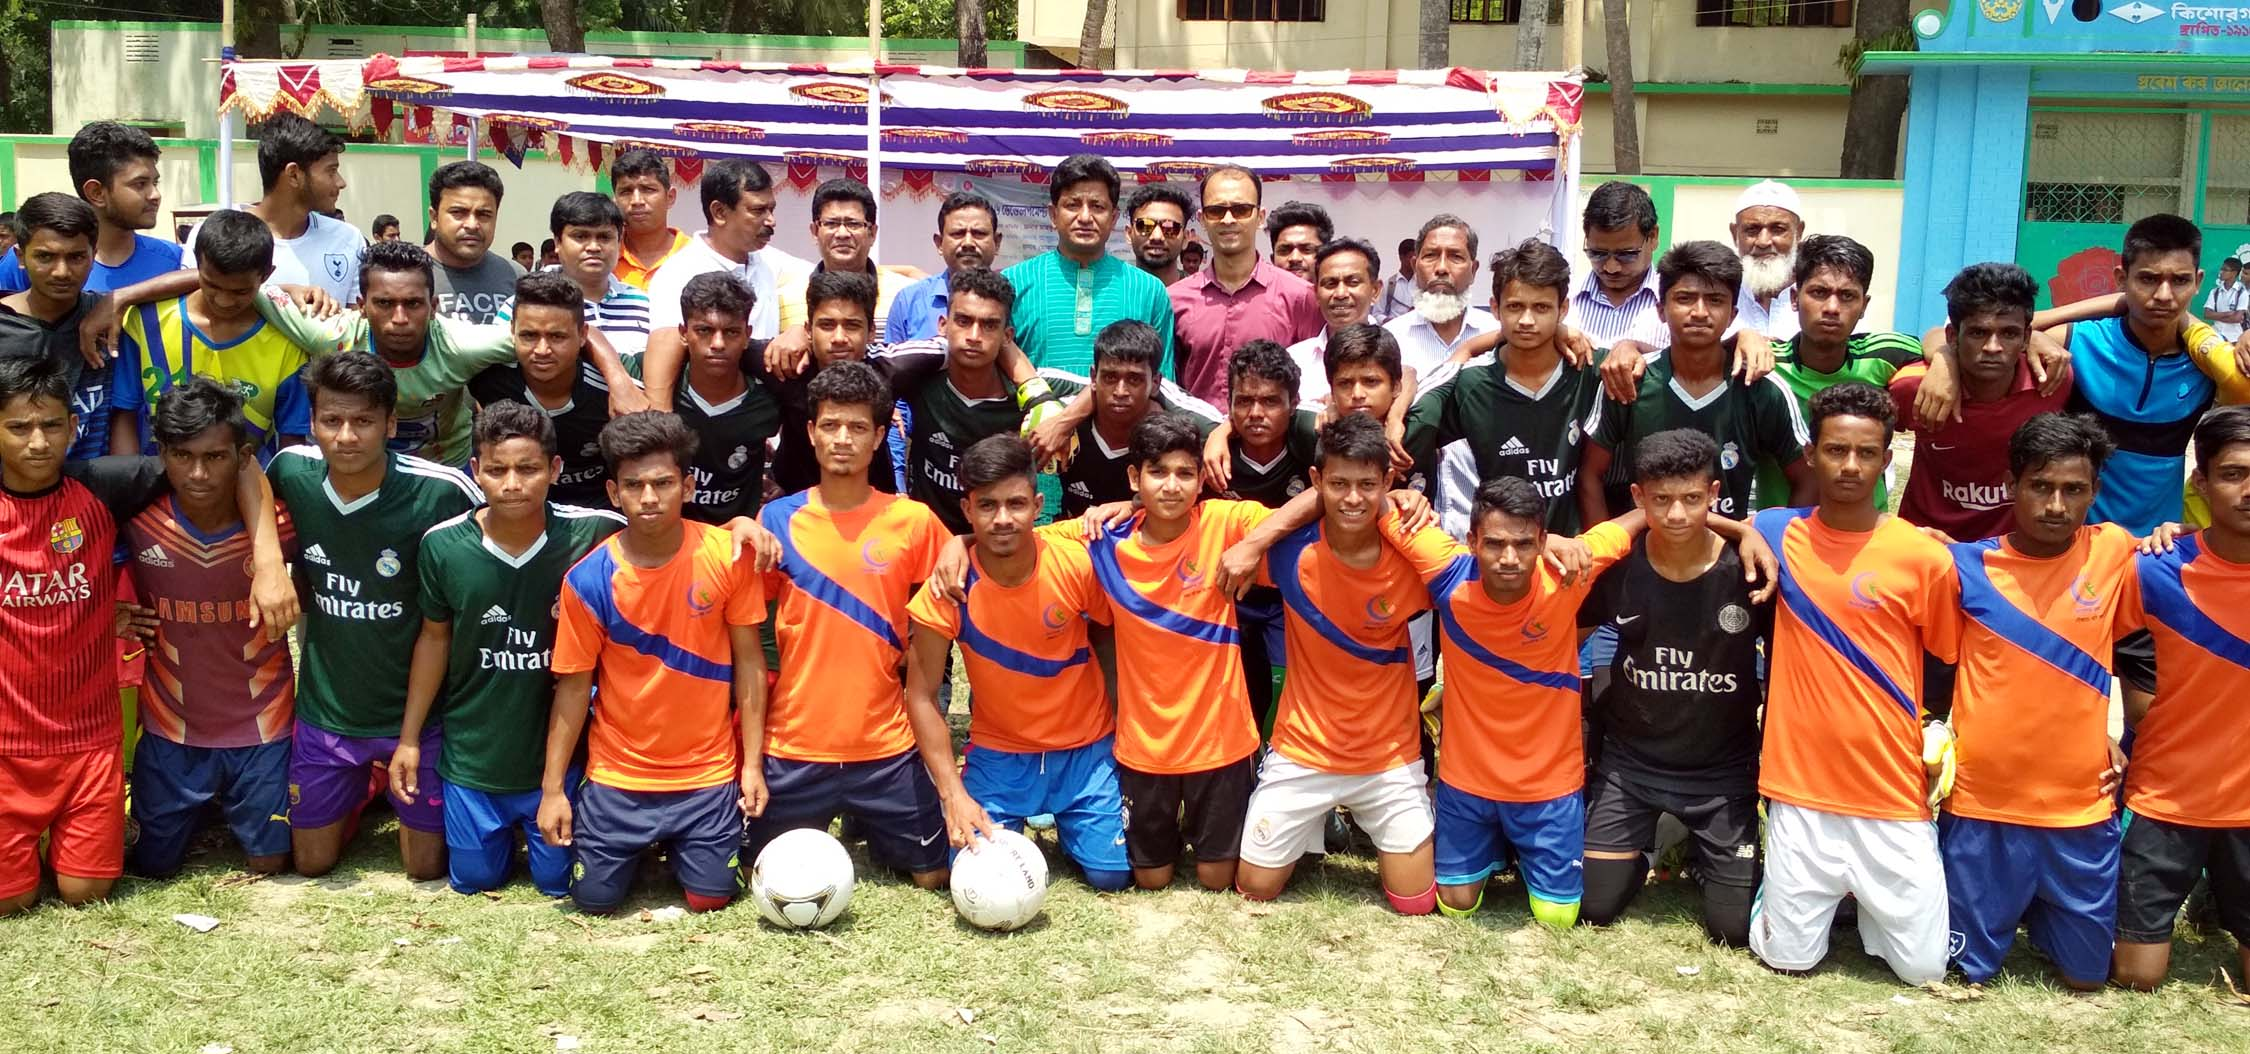 The participants of the selection programme of the Under-16 Development Cup Football Tournament of Kishoreganj District with the chief guest Md Mahmud Parvez, Mayor, Kishoreganj Municipality and the former footballers pose for photo at Azim Uddin High School Ground in Sadar Upazila of Kishoreganj on Tuesday.